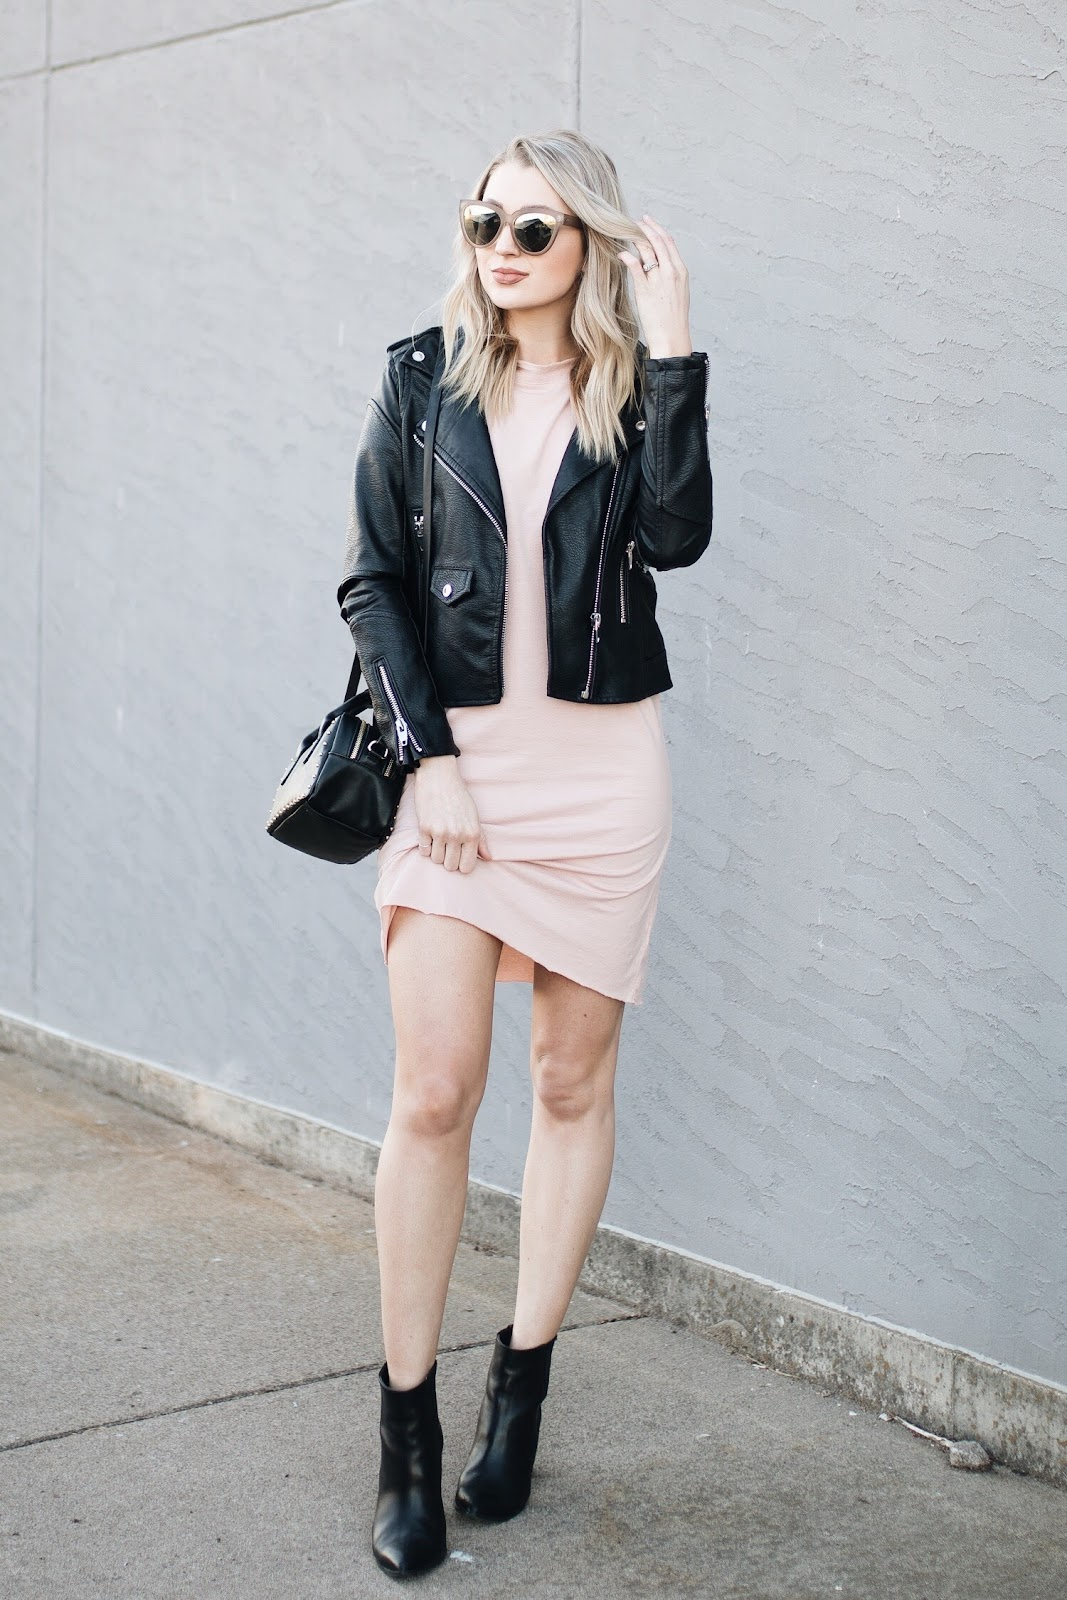 T-shirt dress with a leather jacket